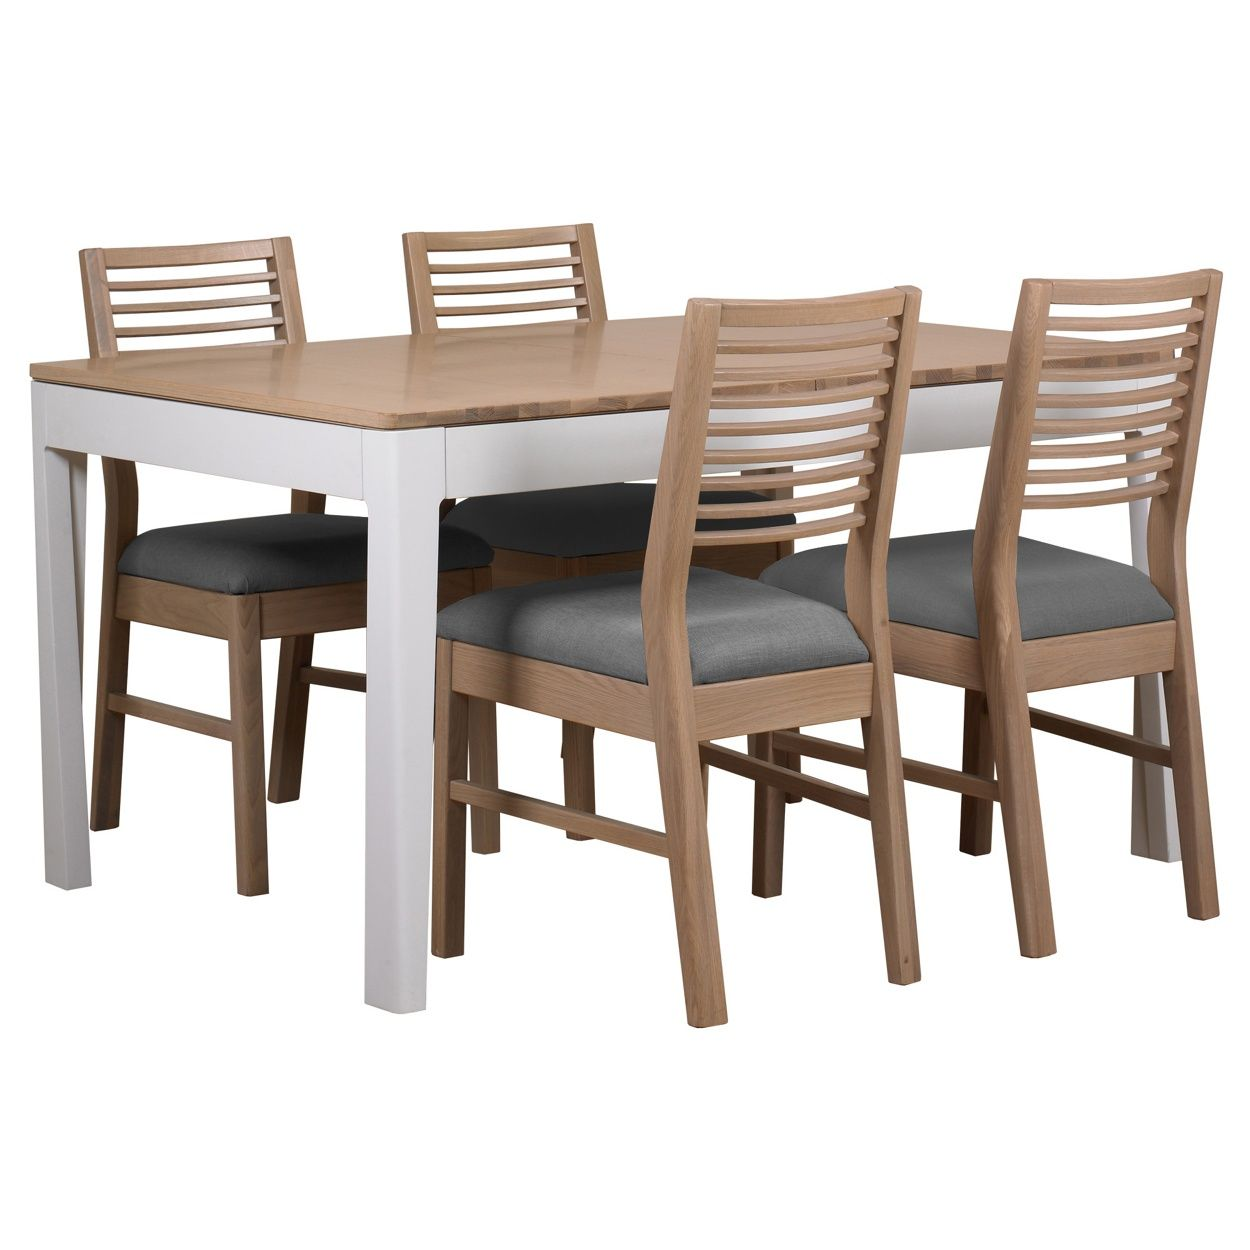 Debenhams Oak And Painted Nord Extending Dining Table Set Of 4 Chairs With